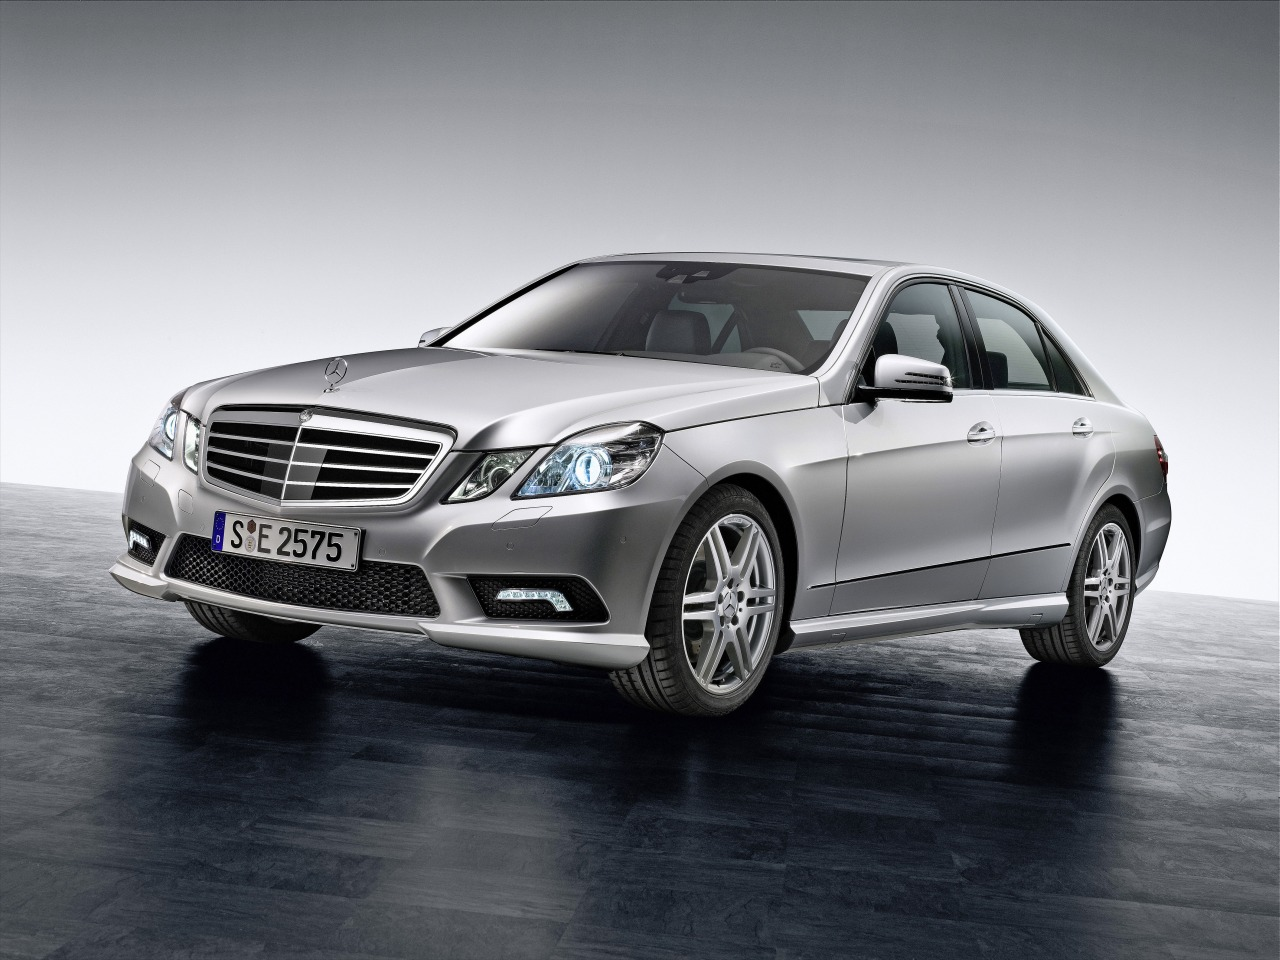 2011 2012 mercedes benz e class price in india